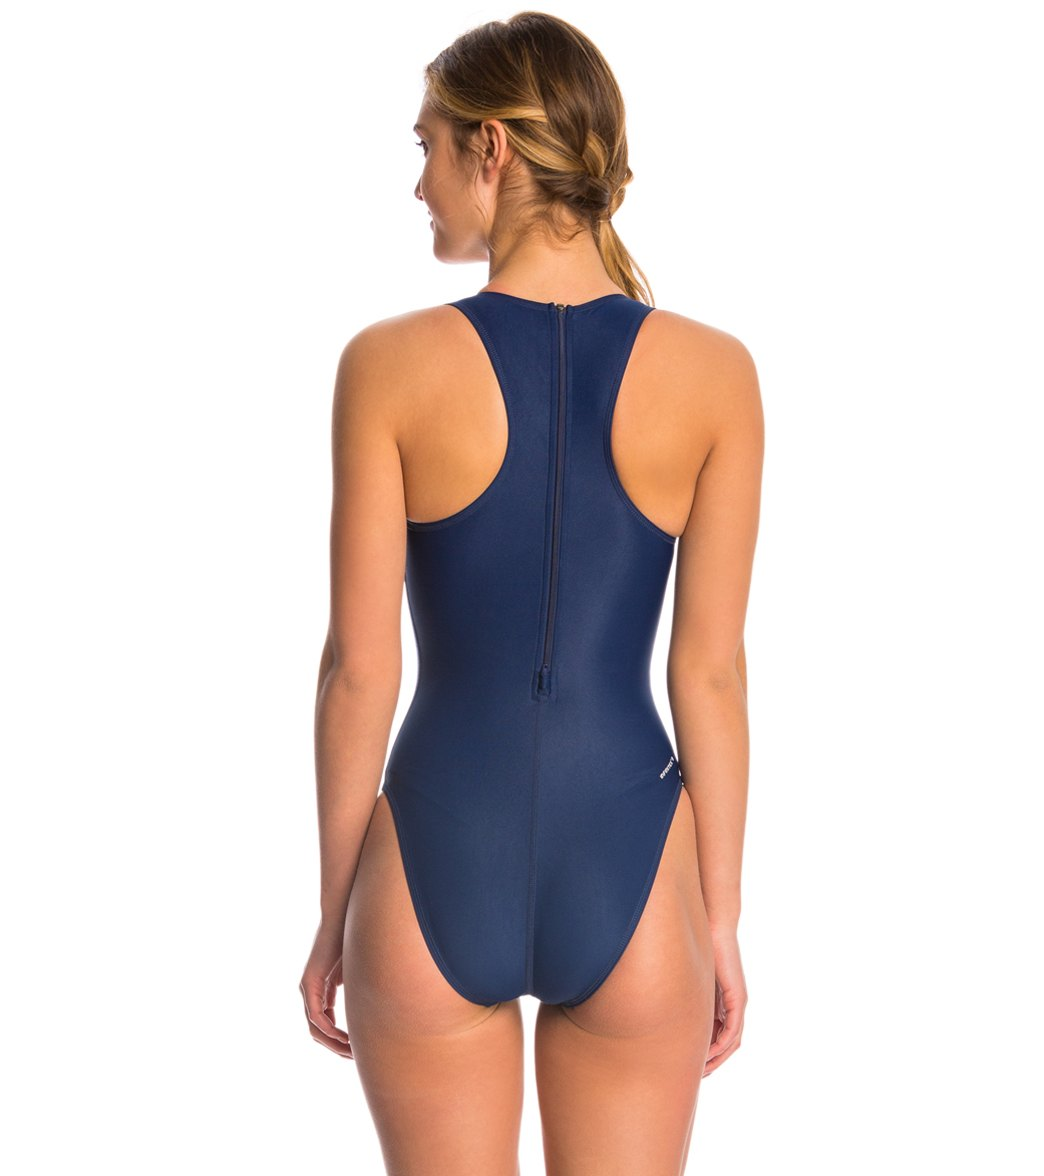 adidas swimsuit full body